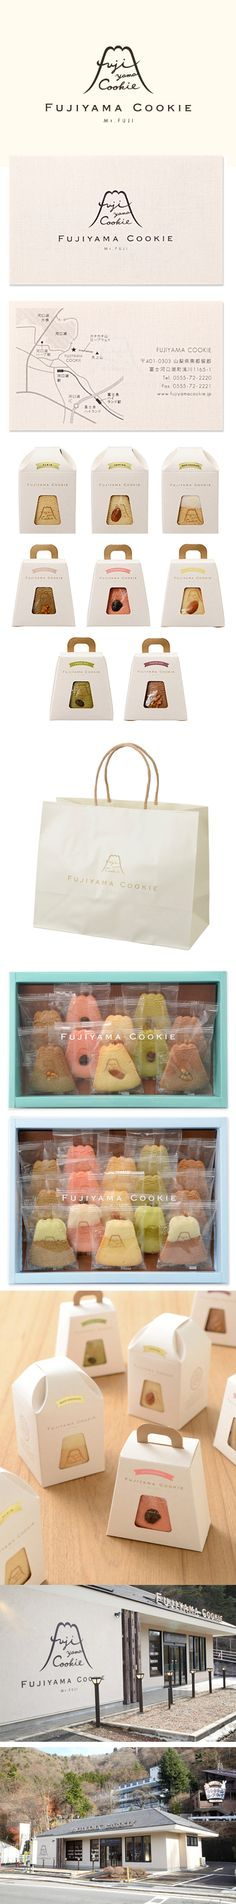 Woo Hoo here's the whole Fujiyama cookie #identity #packaging #branding story curated by Packaging Diva PD